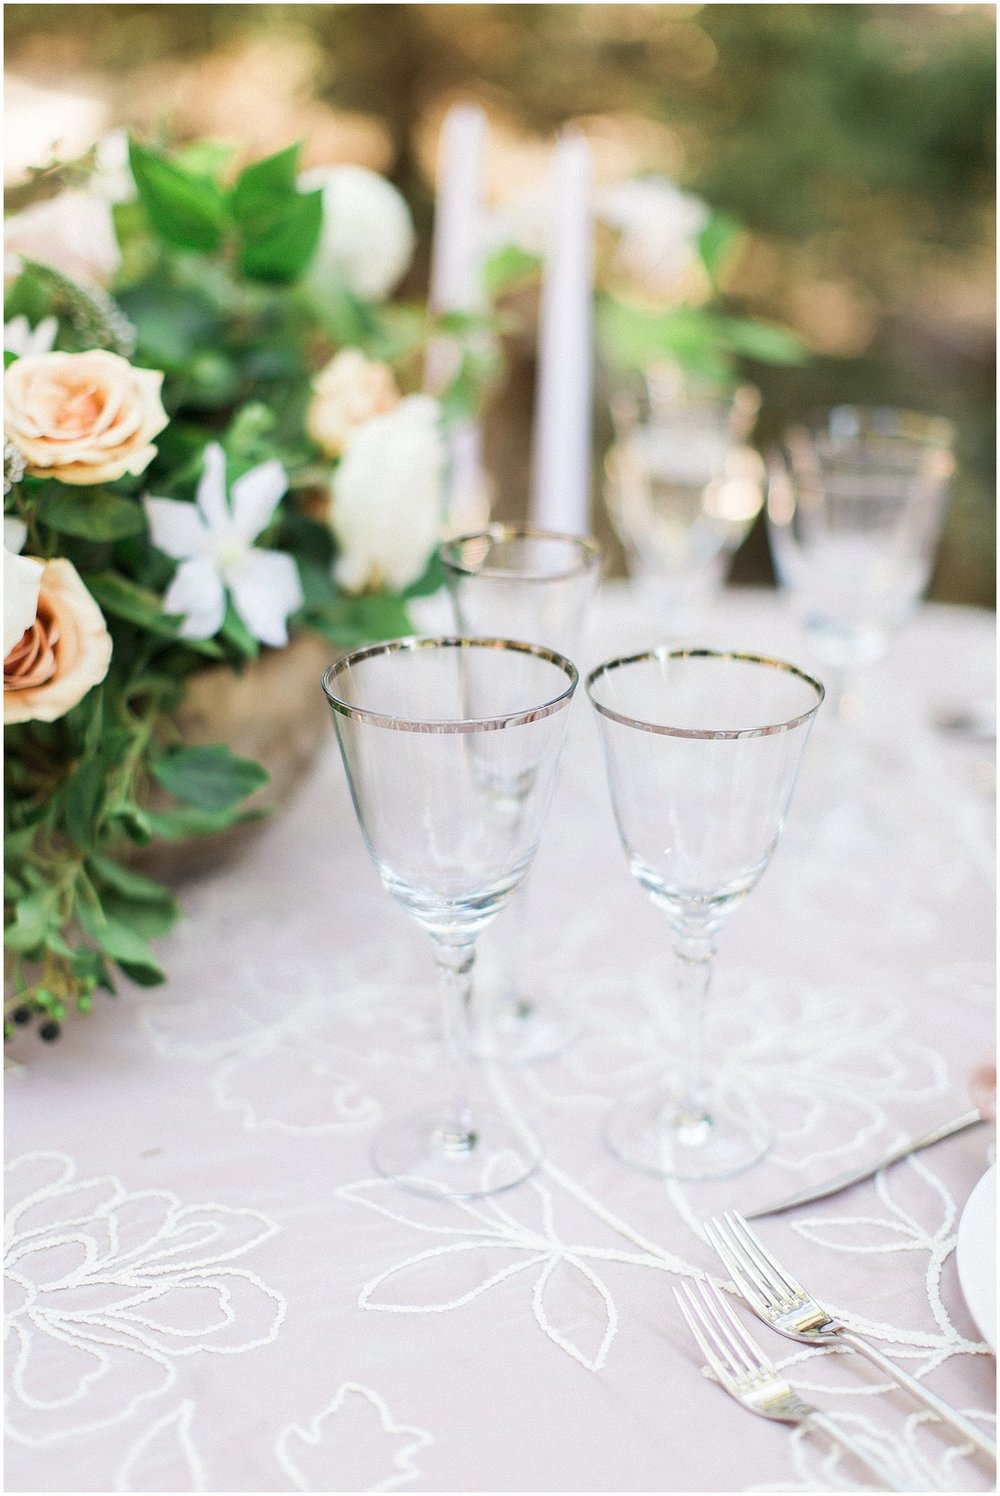 Elegant Silver Rimmed Glasses & La Tavola Peony Linen featured on Style Me Pretty | Phoenix Wedding Planner | Megan Dileen Events